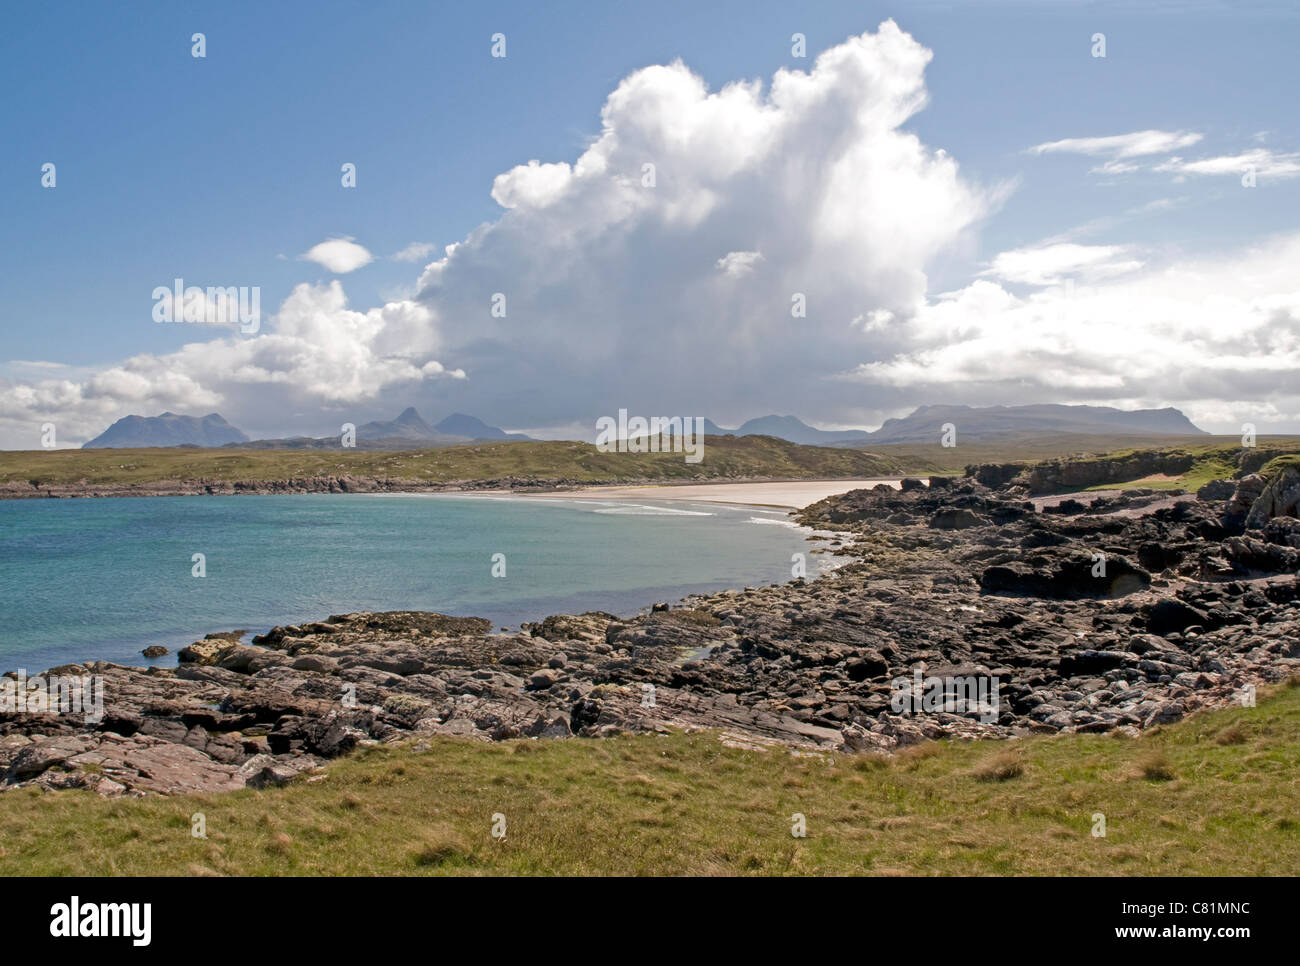 Beach at Achnahaird Bay, Wester Ross, with distant towering cumulonimbus shower clouds over the highlands. - Stock Image